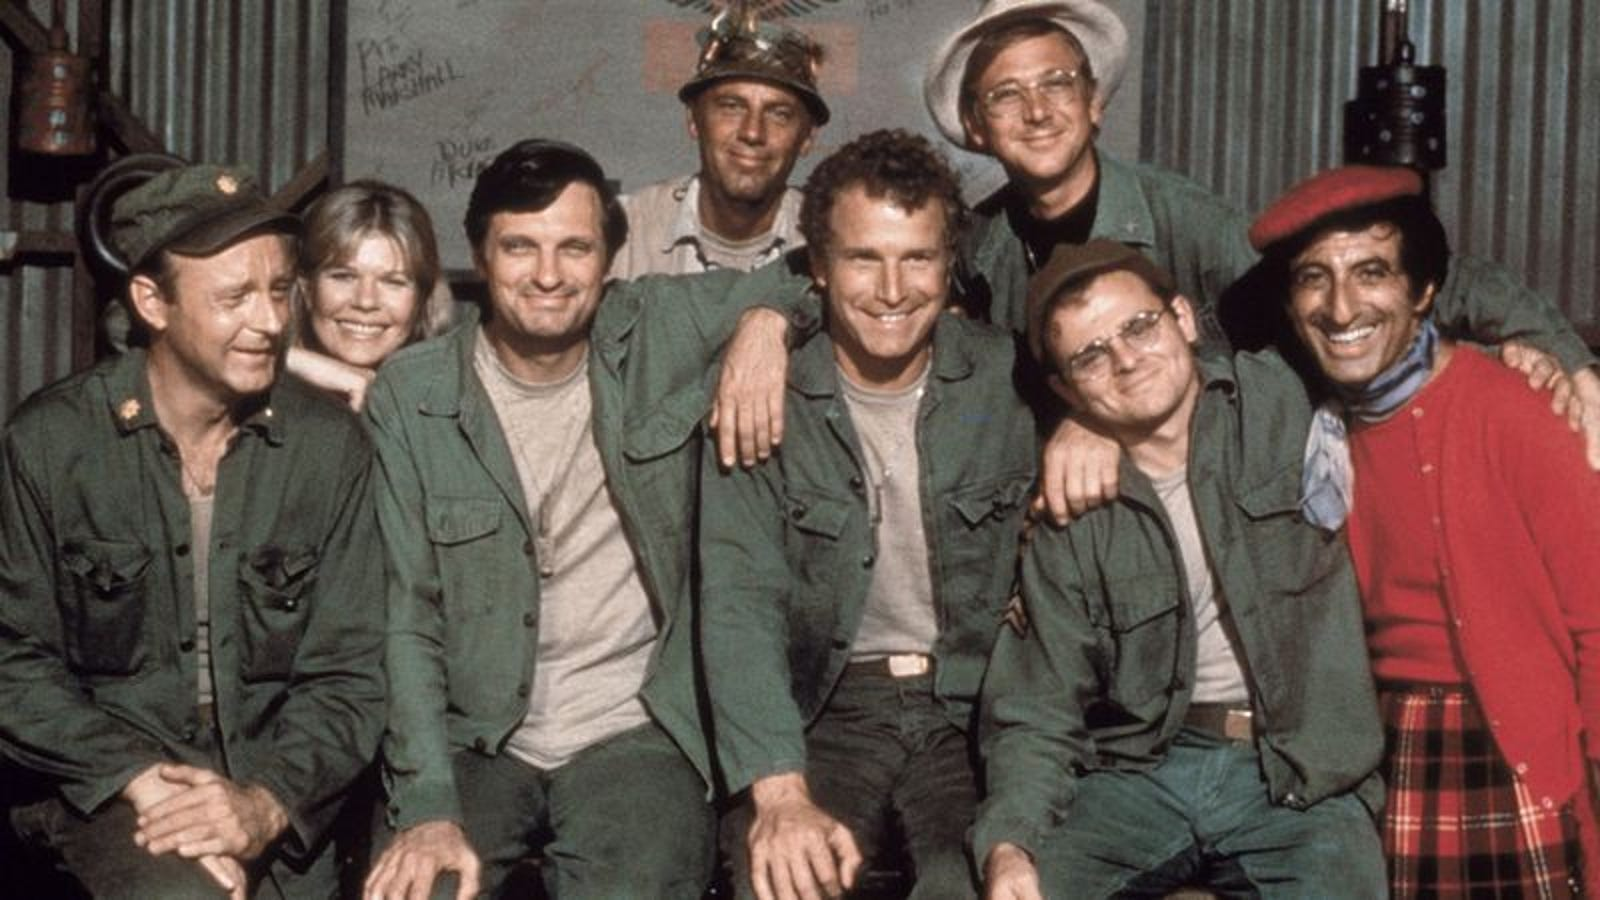 10 classic episodes of M*A*S*H